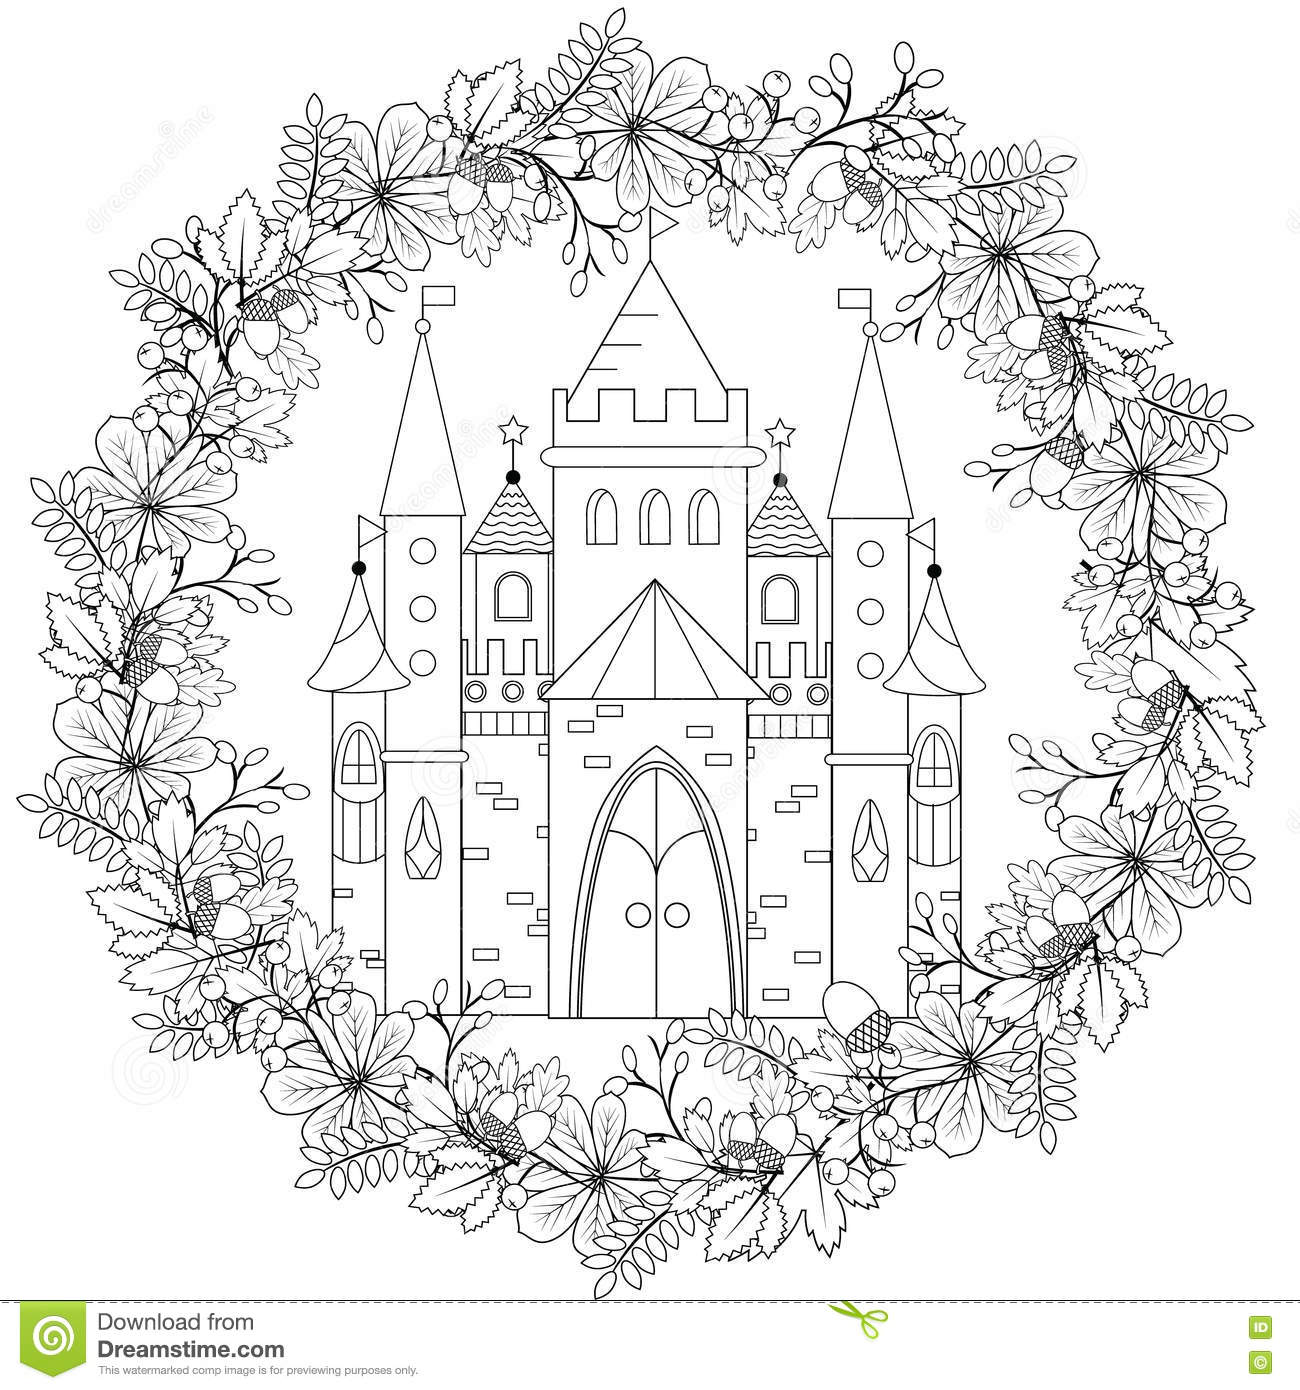 Relaxing coloring page with fairy castle in forest wreath for Therapeutic coloring pages for children